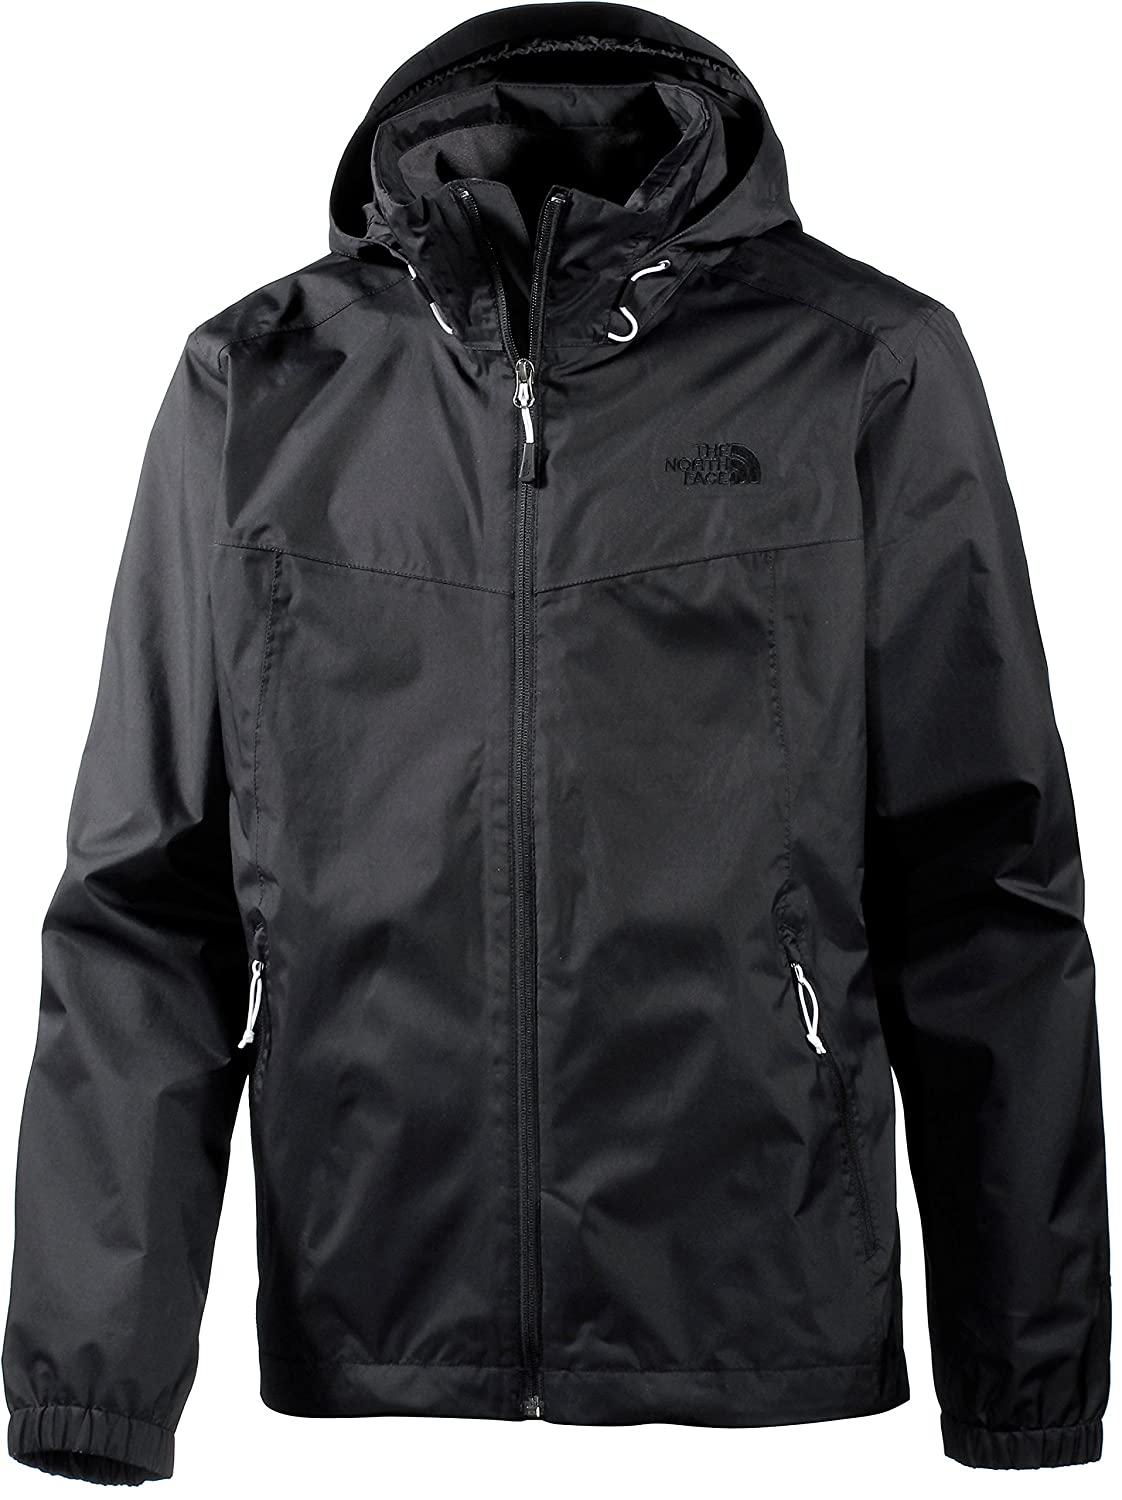 The North Face Herren Regenjacke günstig kaufen